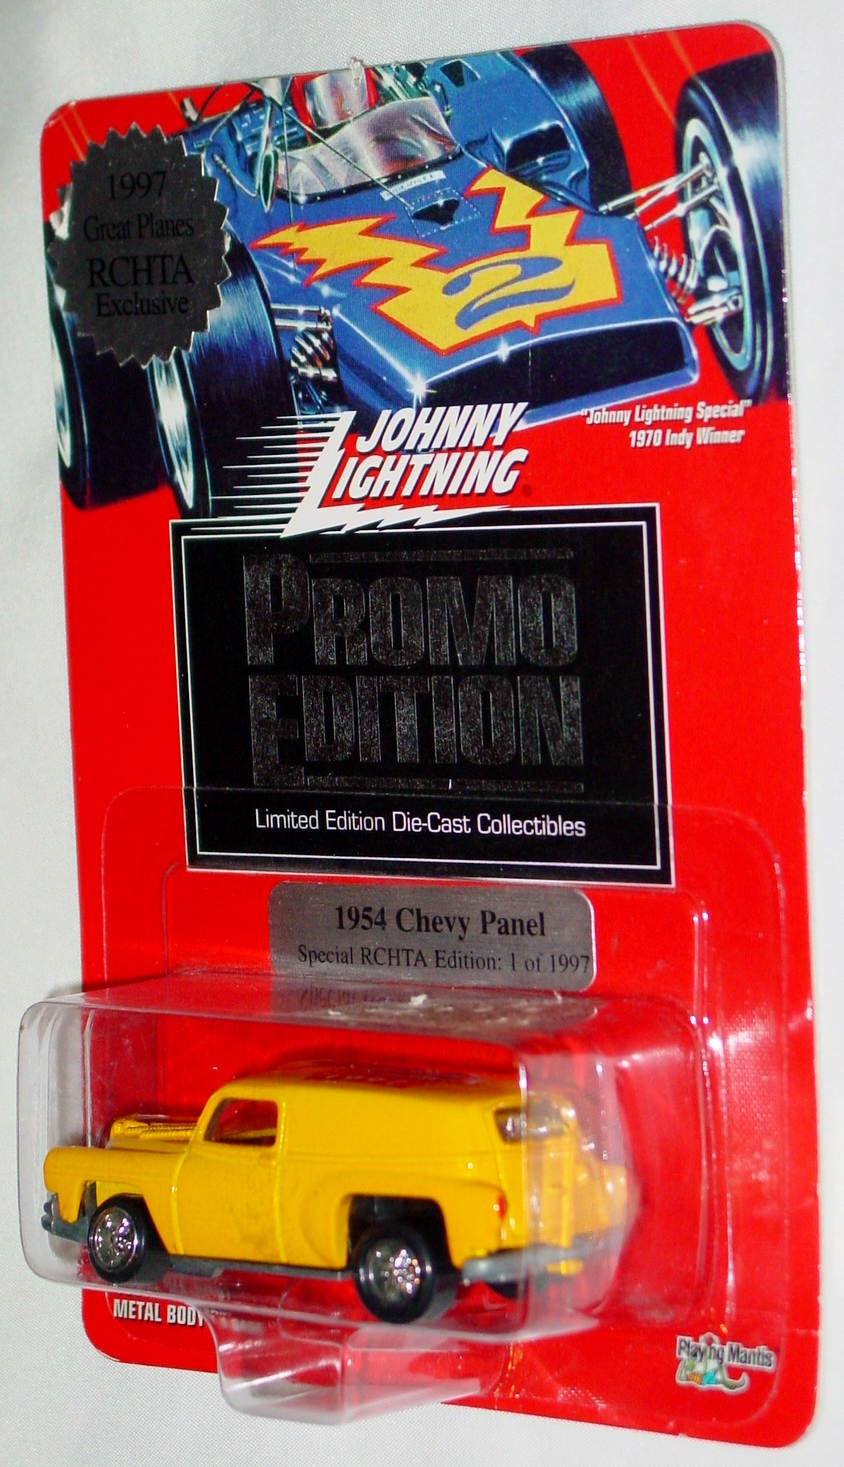 White Lightning - PROMO EDITION 54 Chevy Panel Yellow RCHTA Ltd 1997